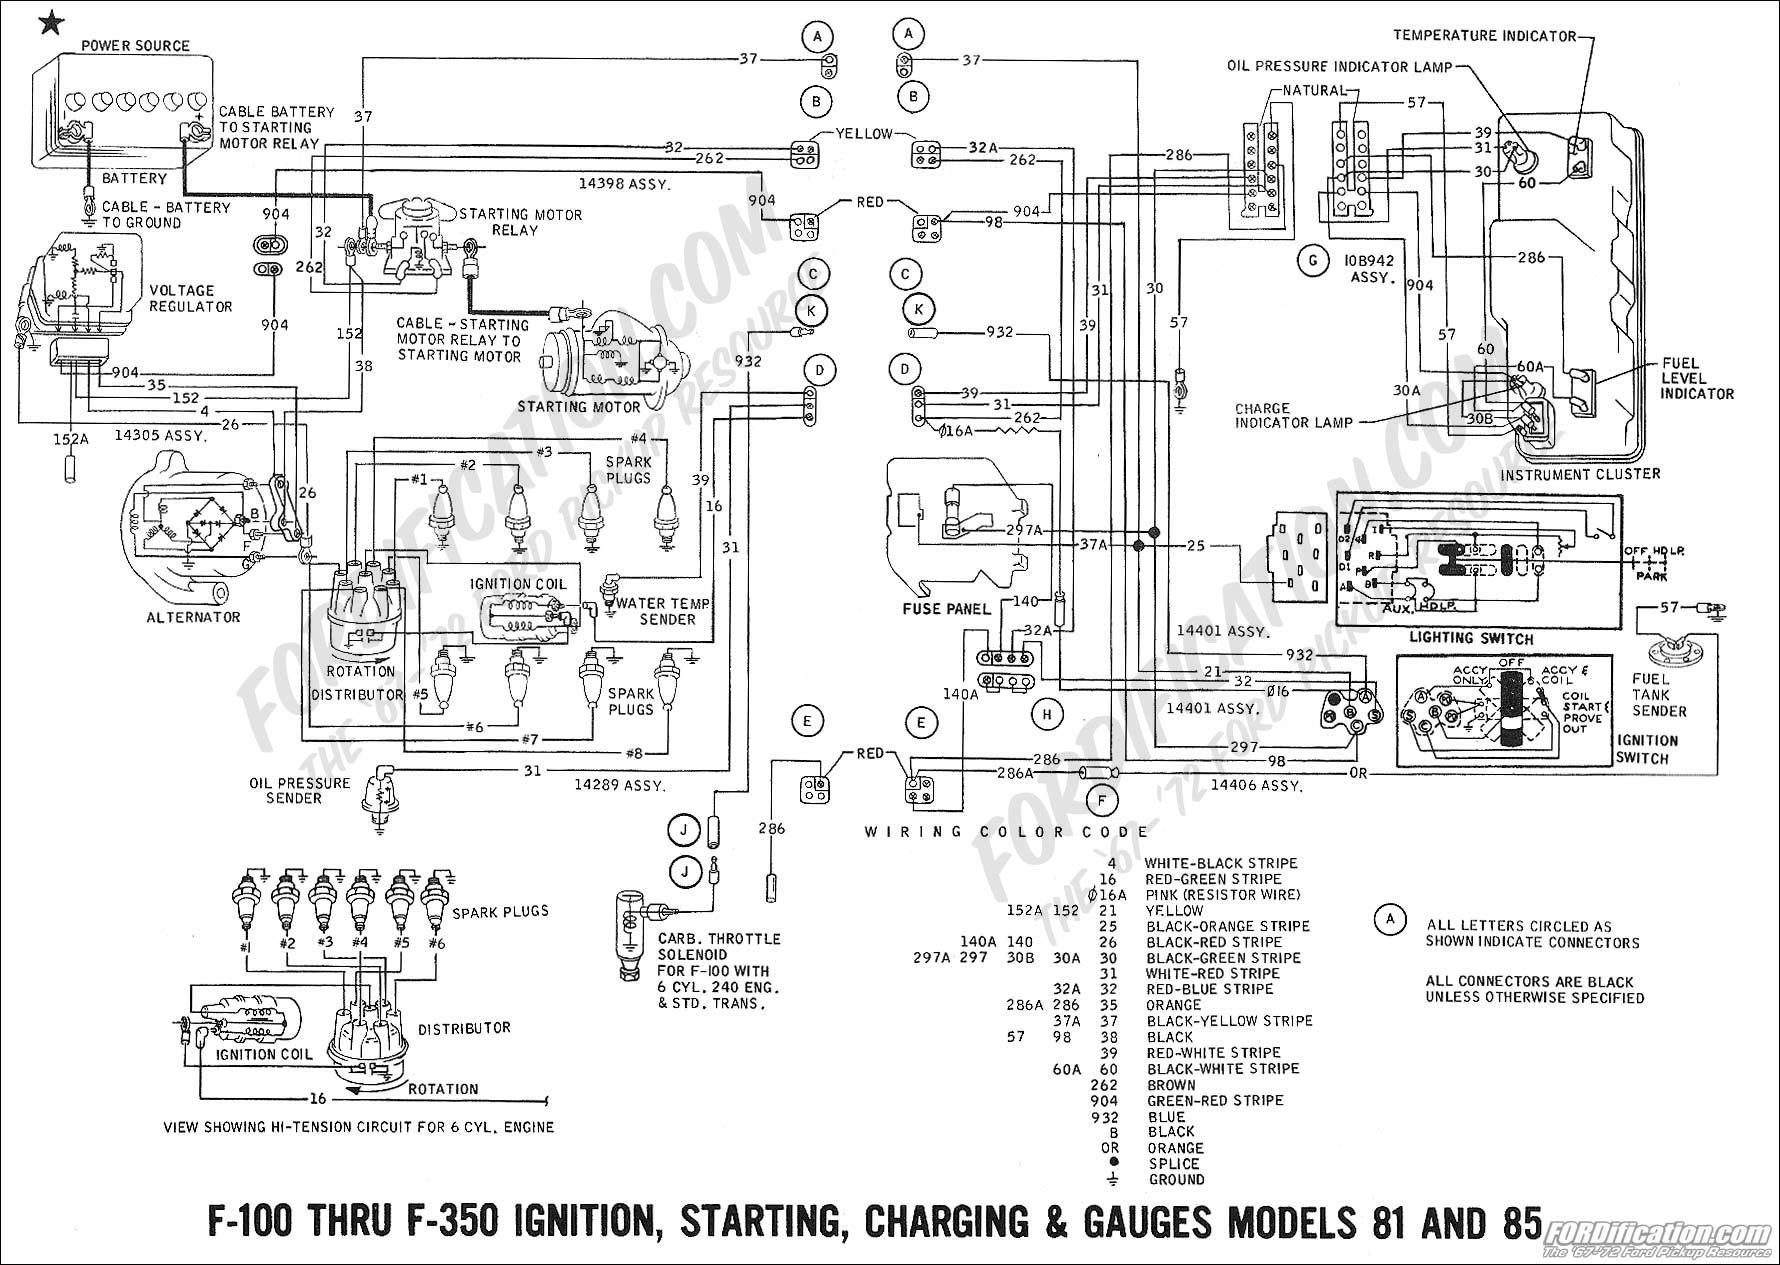 1980 Ford 460 Wiring Diagram Download Diagrams Mustang Example Electrical U2022 Rh Huntervalleyhotels Co 2004 99 Speaker